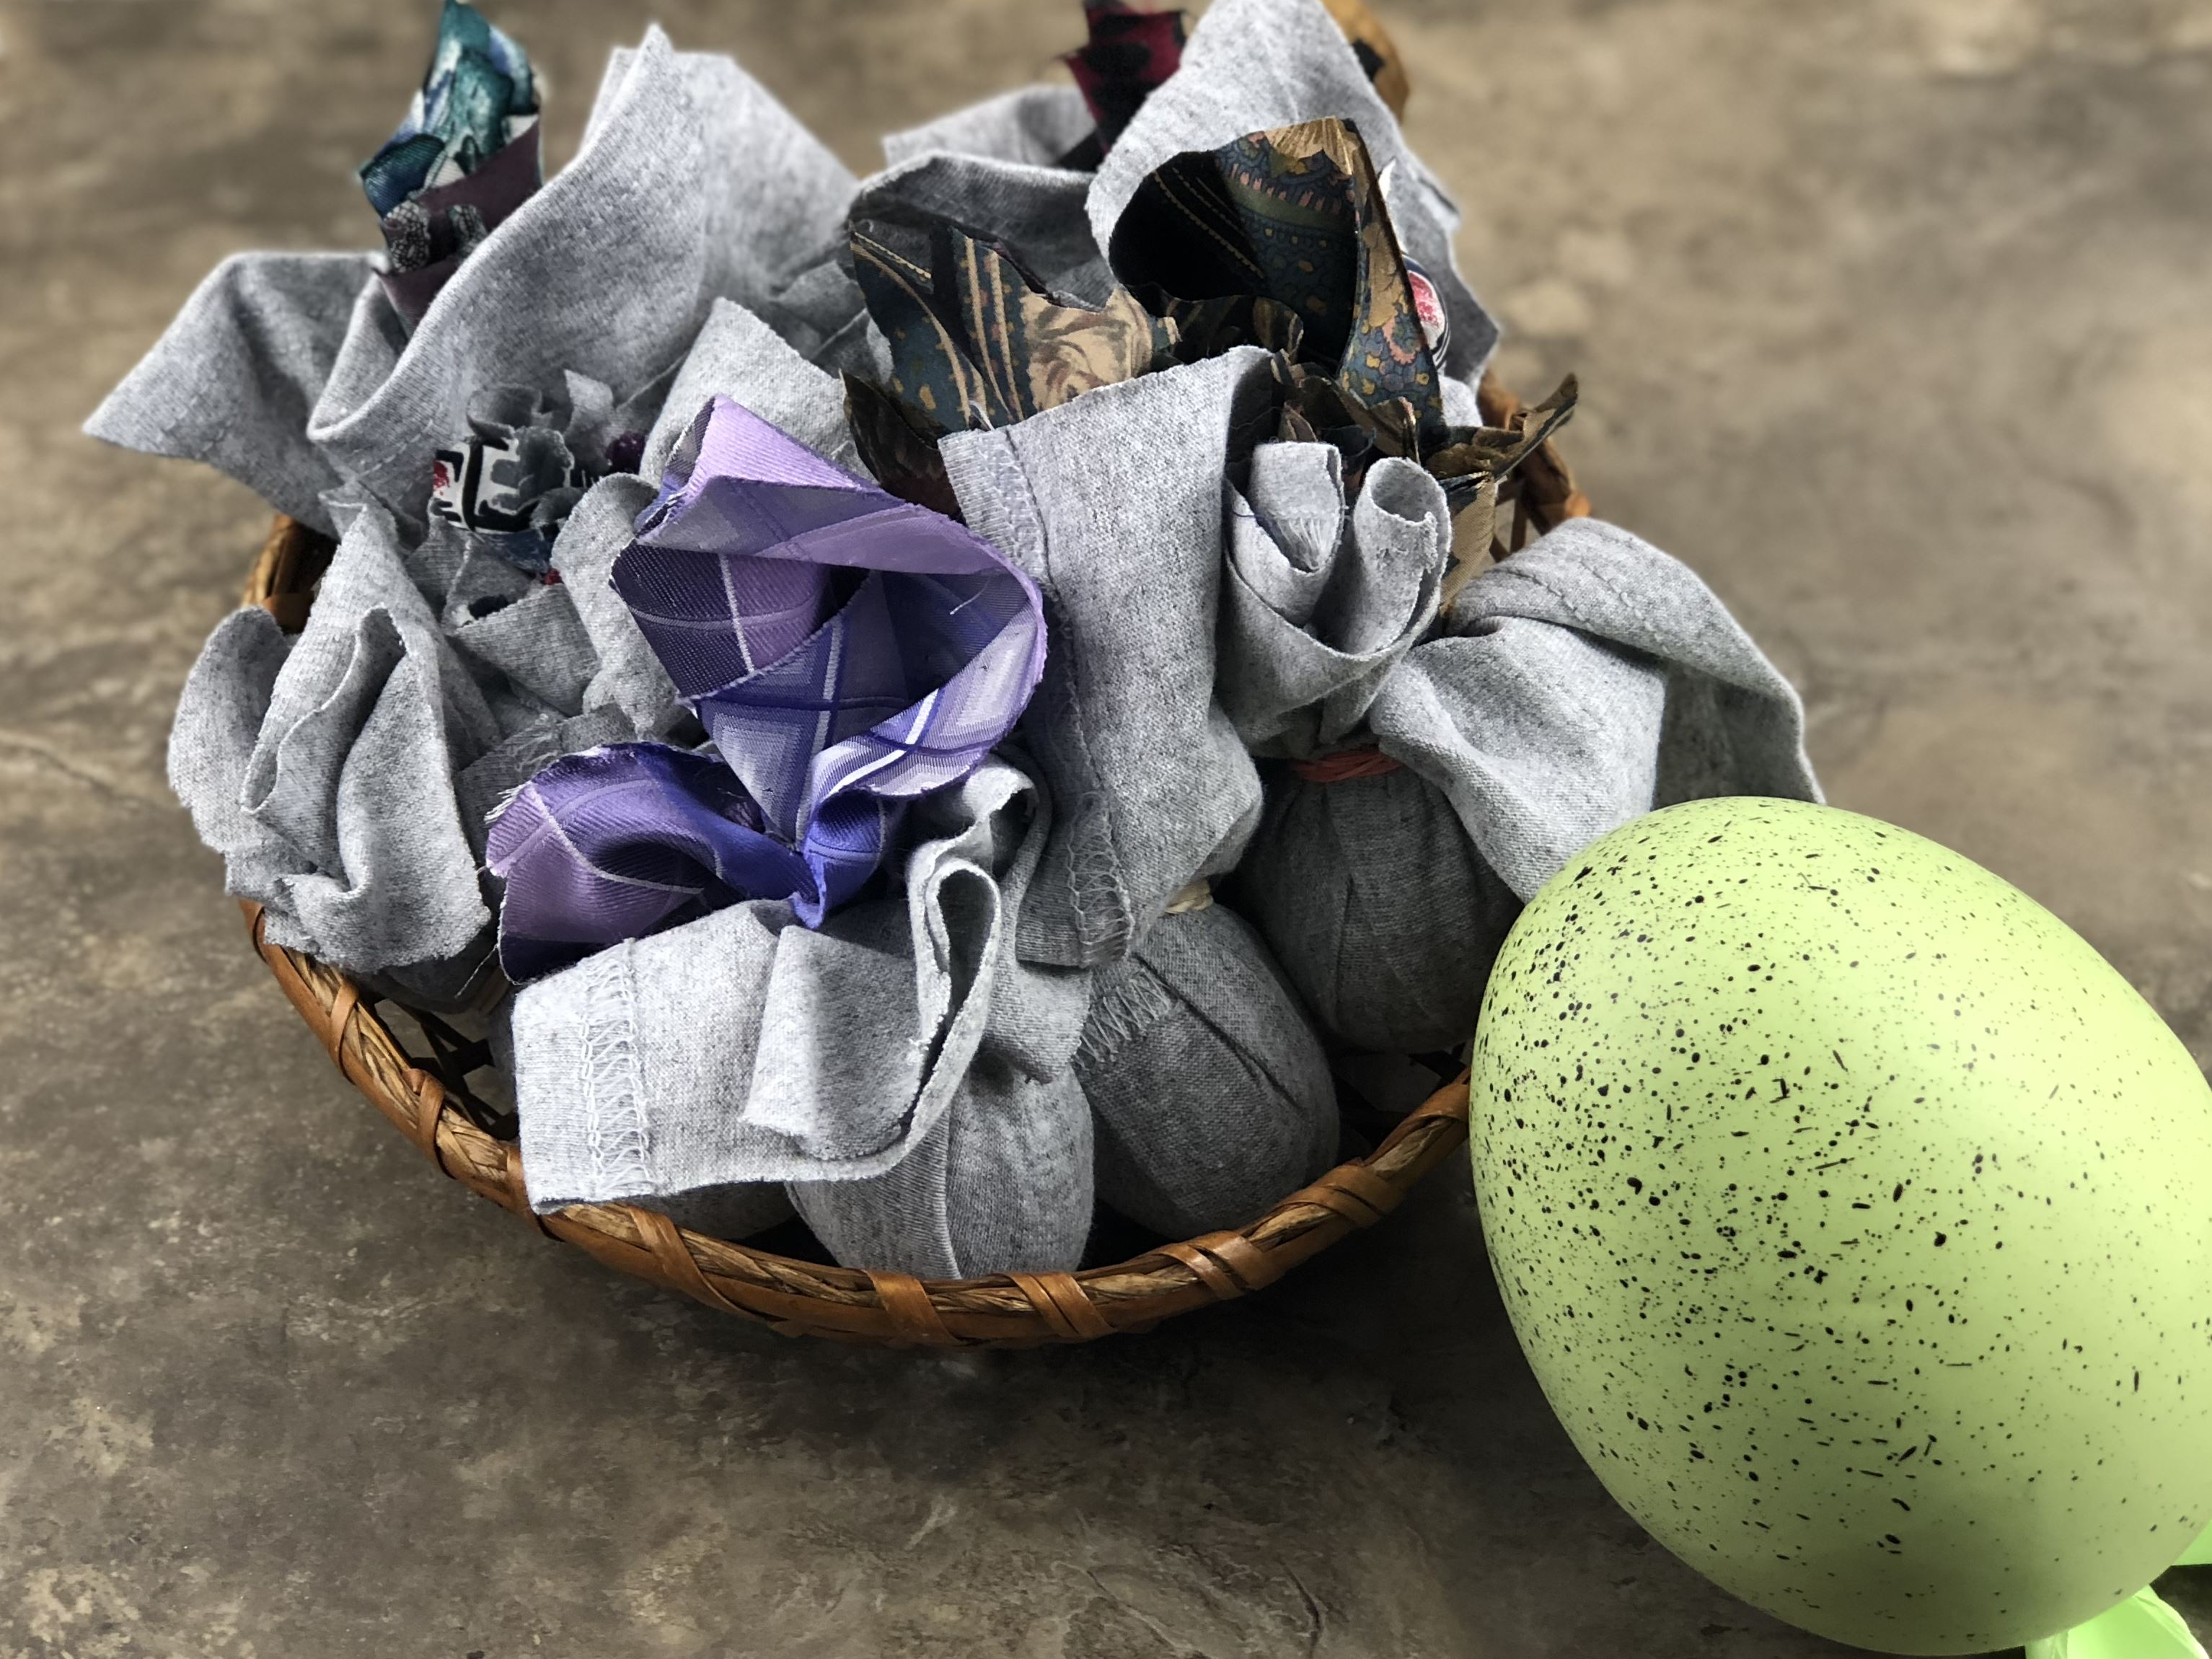 silk dyed eggs wrapped in ties in a basket